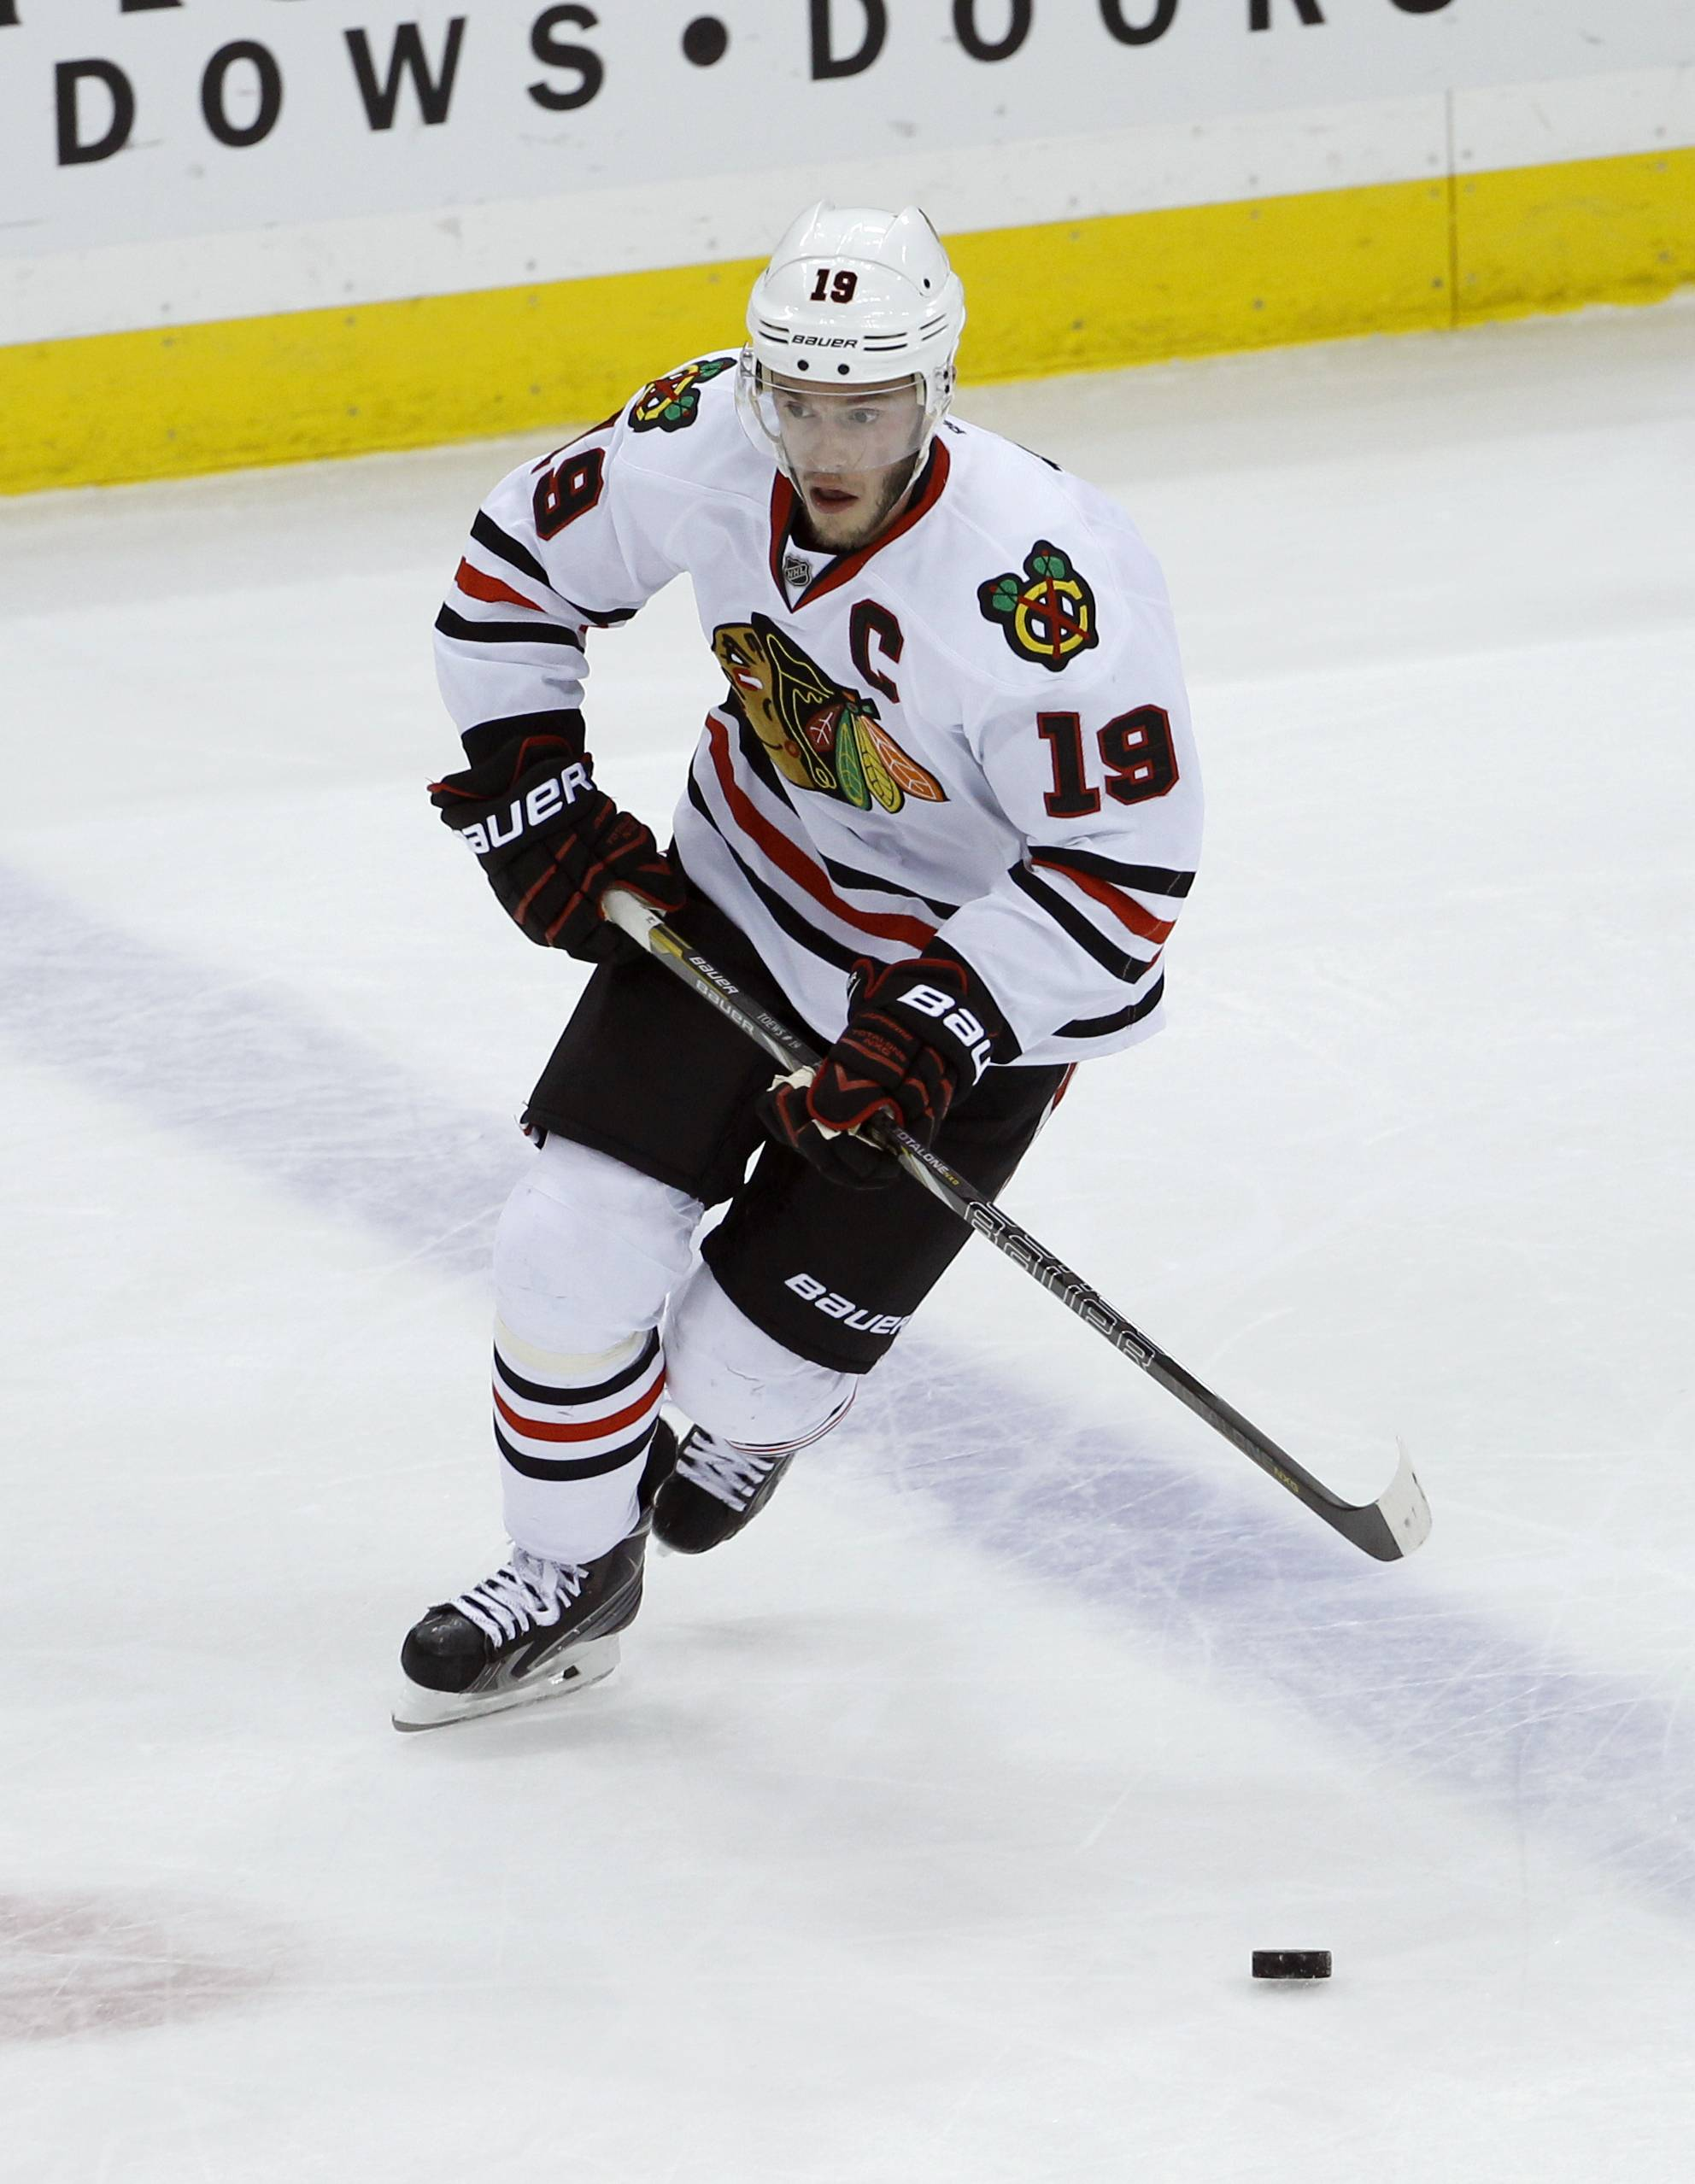 Chicago Blackhawks center Jonathan Toews (19) controls the puck during the first period of Game 6 of an NHL hockey second-round playoff series against the Minnesota Wild in St. Paul, Minn., Tuesday, May 13, 2014.